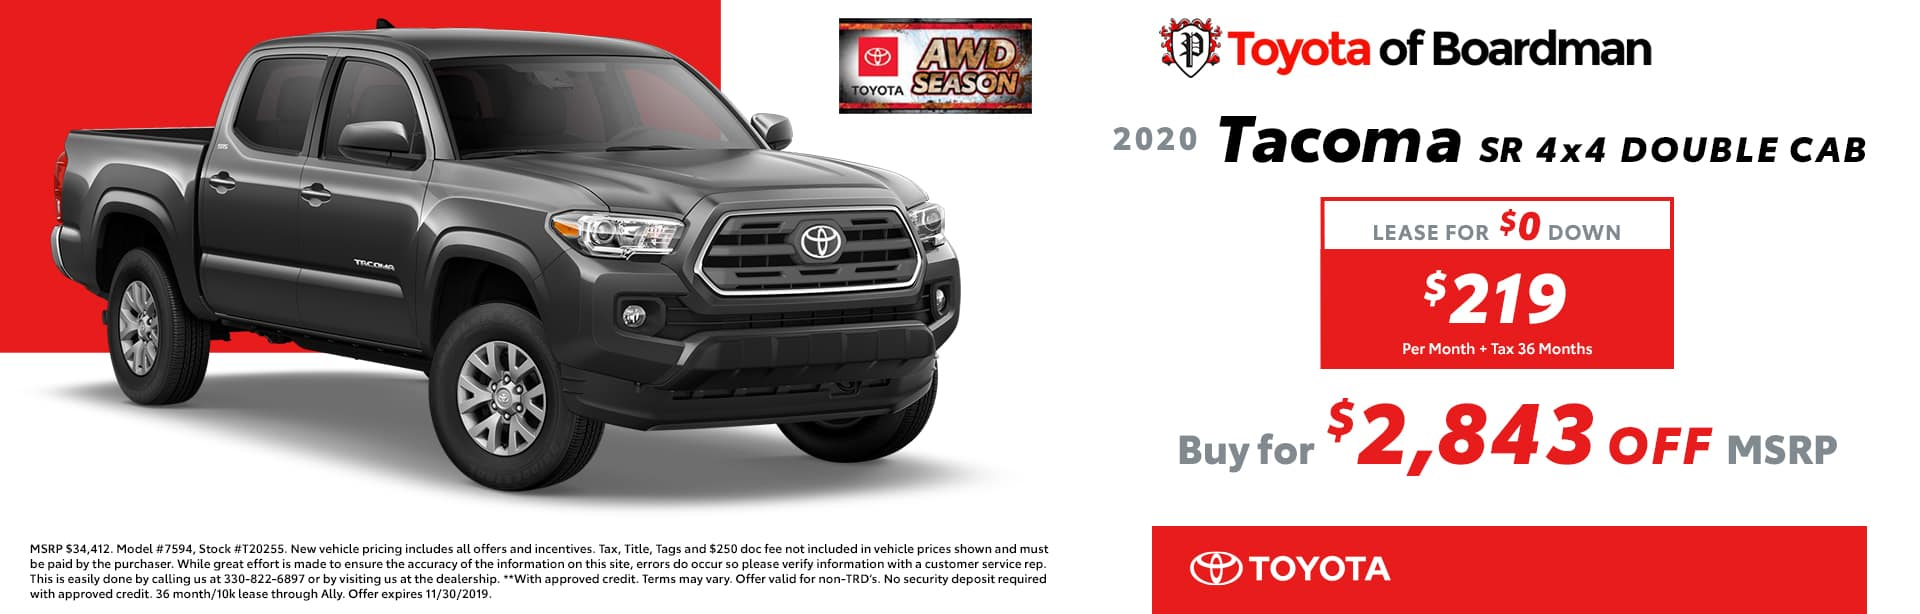 Toyota Pay By Phone >> Toyota Of Boardman New Used Cars In Boardman Oh